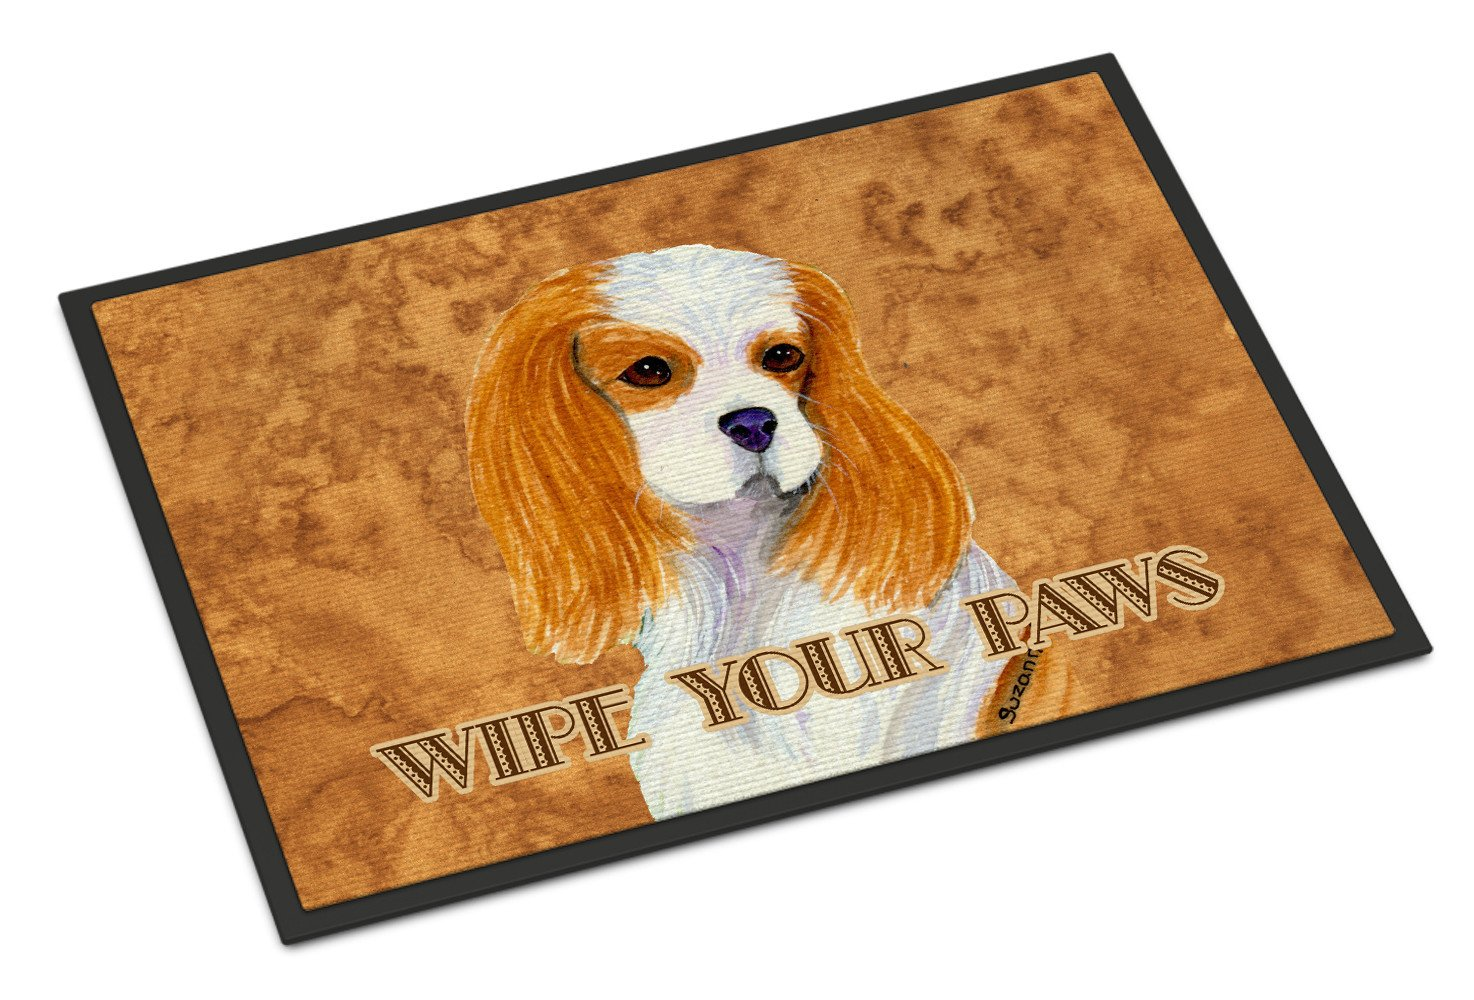 Blenheim Cavalier Spaniel Wipe your Paws Indoor or Outdoor Mat 18x27 SS4877MAT - the-store.com